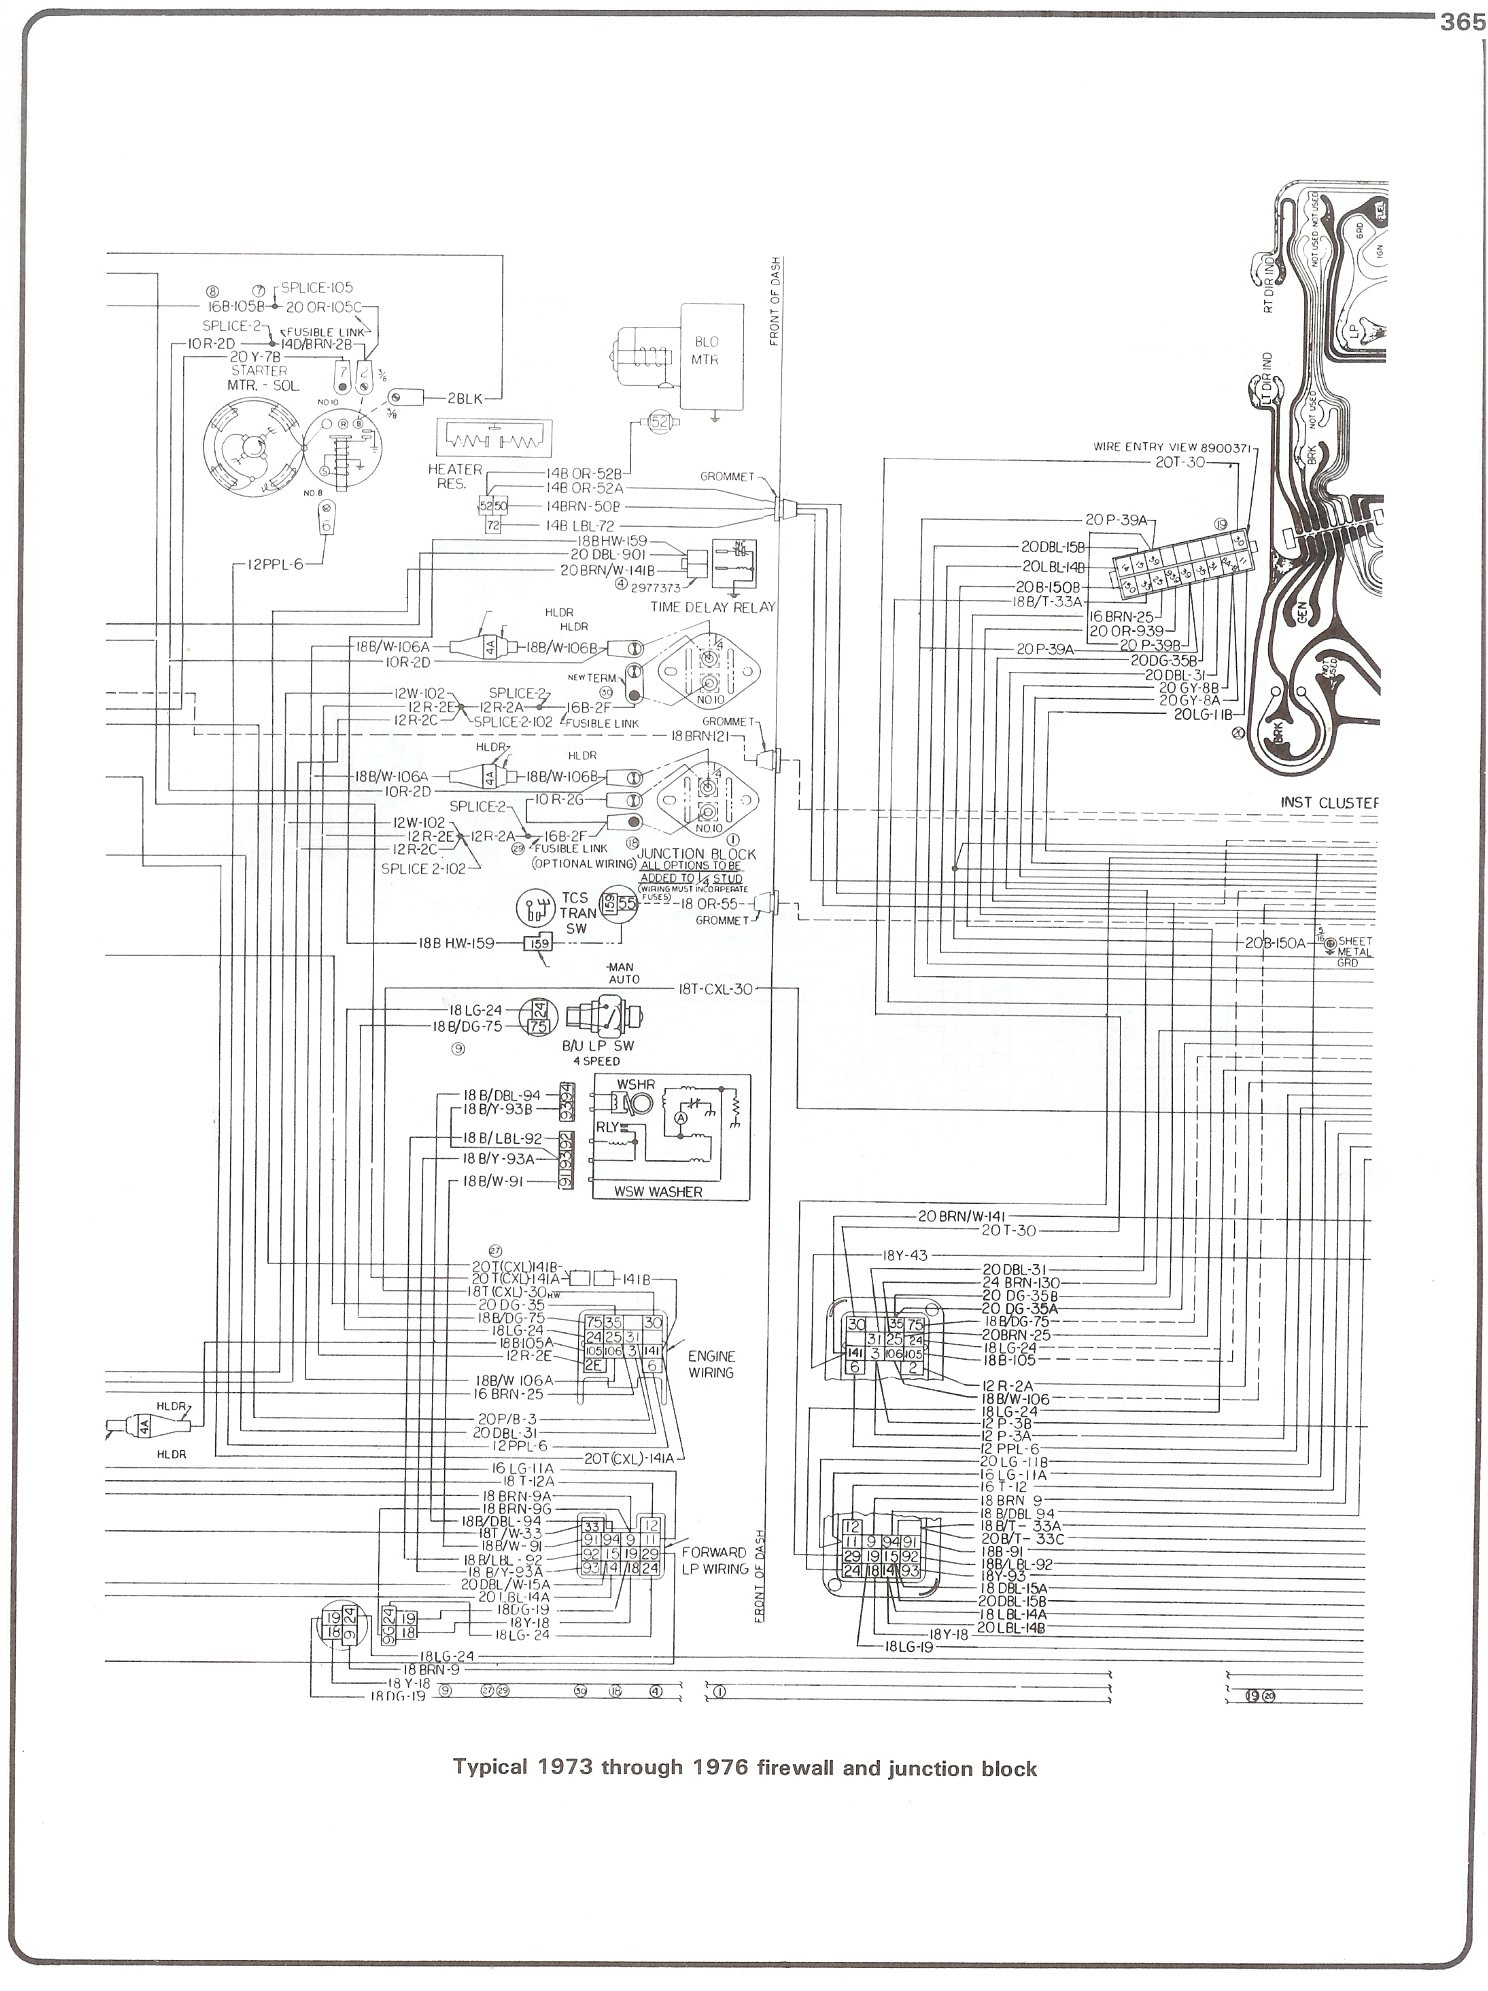 73 76_firewall_junct complete 73 87 wiring diagrams 1996 C1500 Wiring Diagram at n-0.co